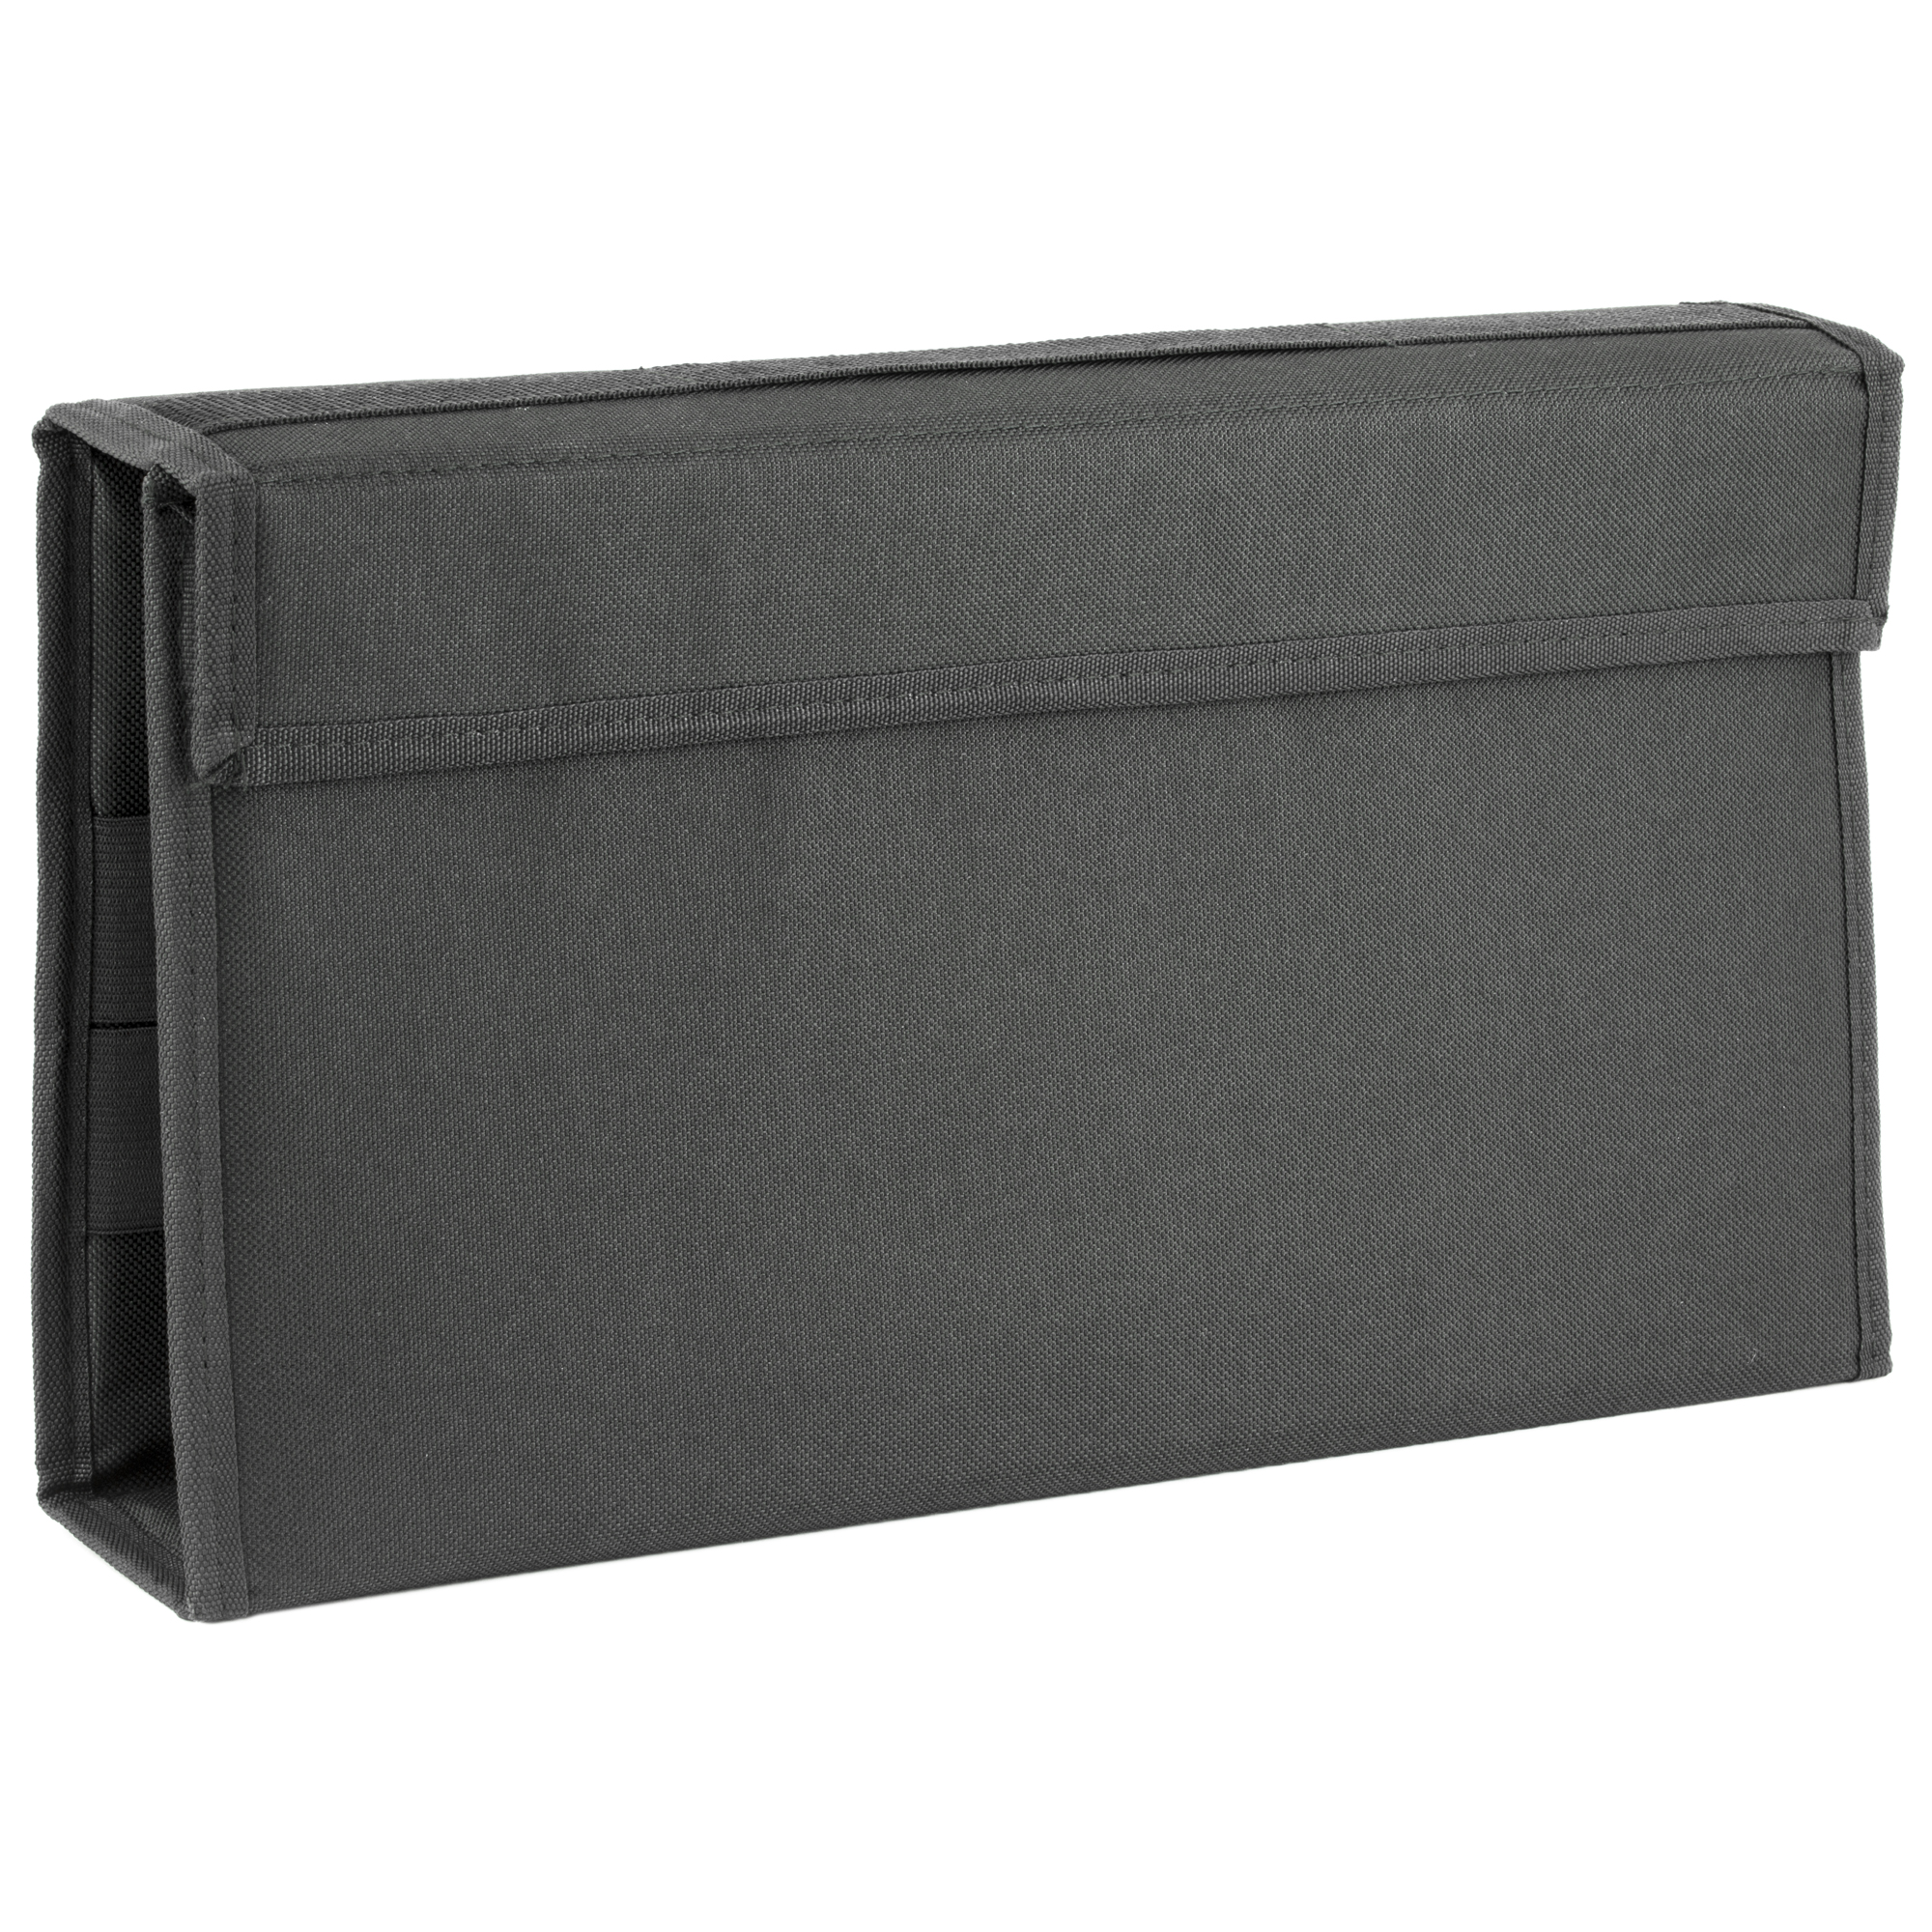 This pistol/rifle magazine wallet provides high capacity storage in a slender profile case. It has a secure full length hook and loop closure and an open flat design to allow rapid access to all magazines.